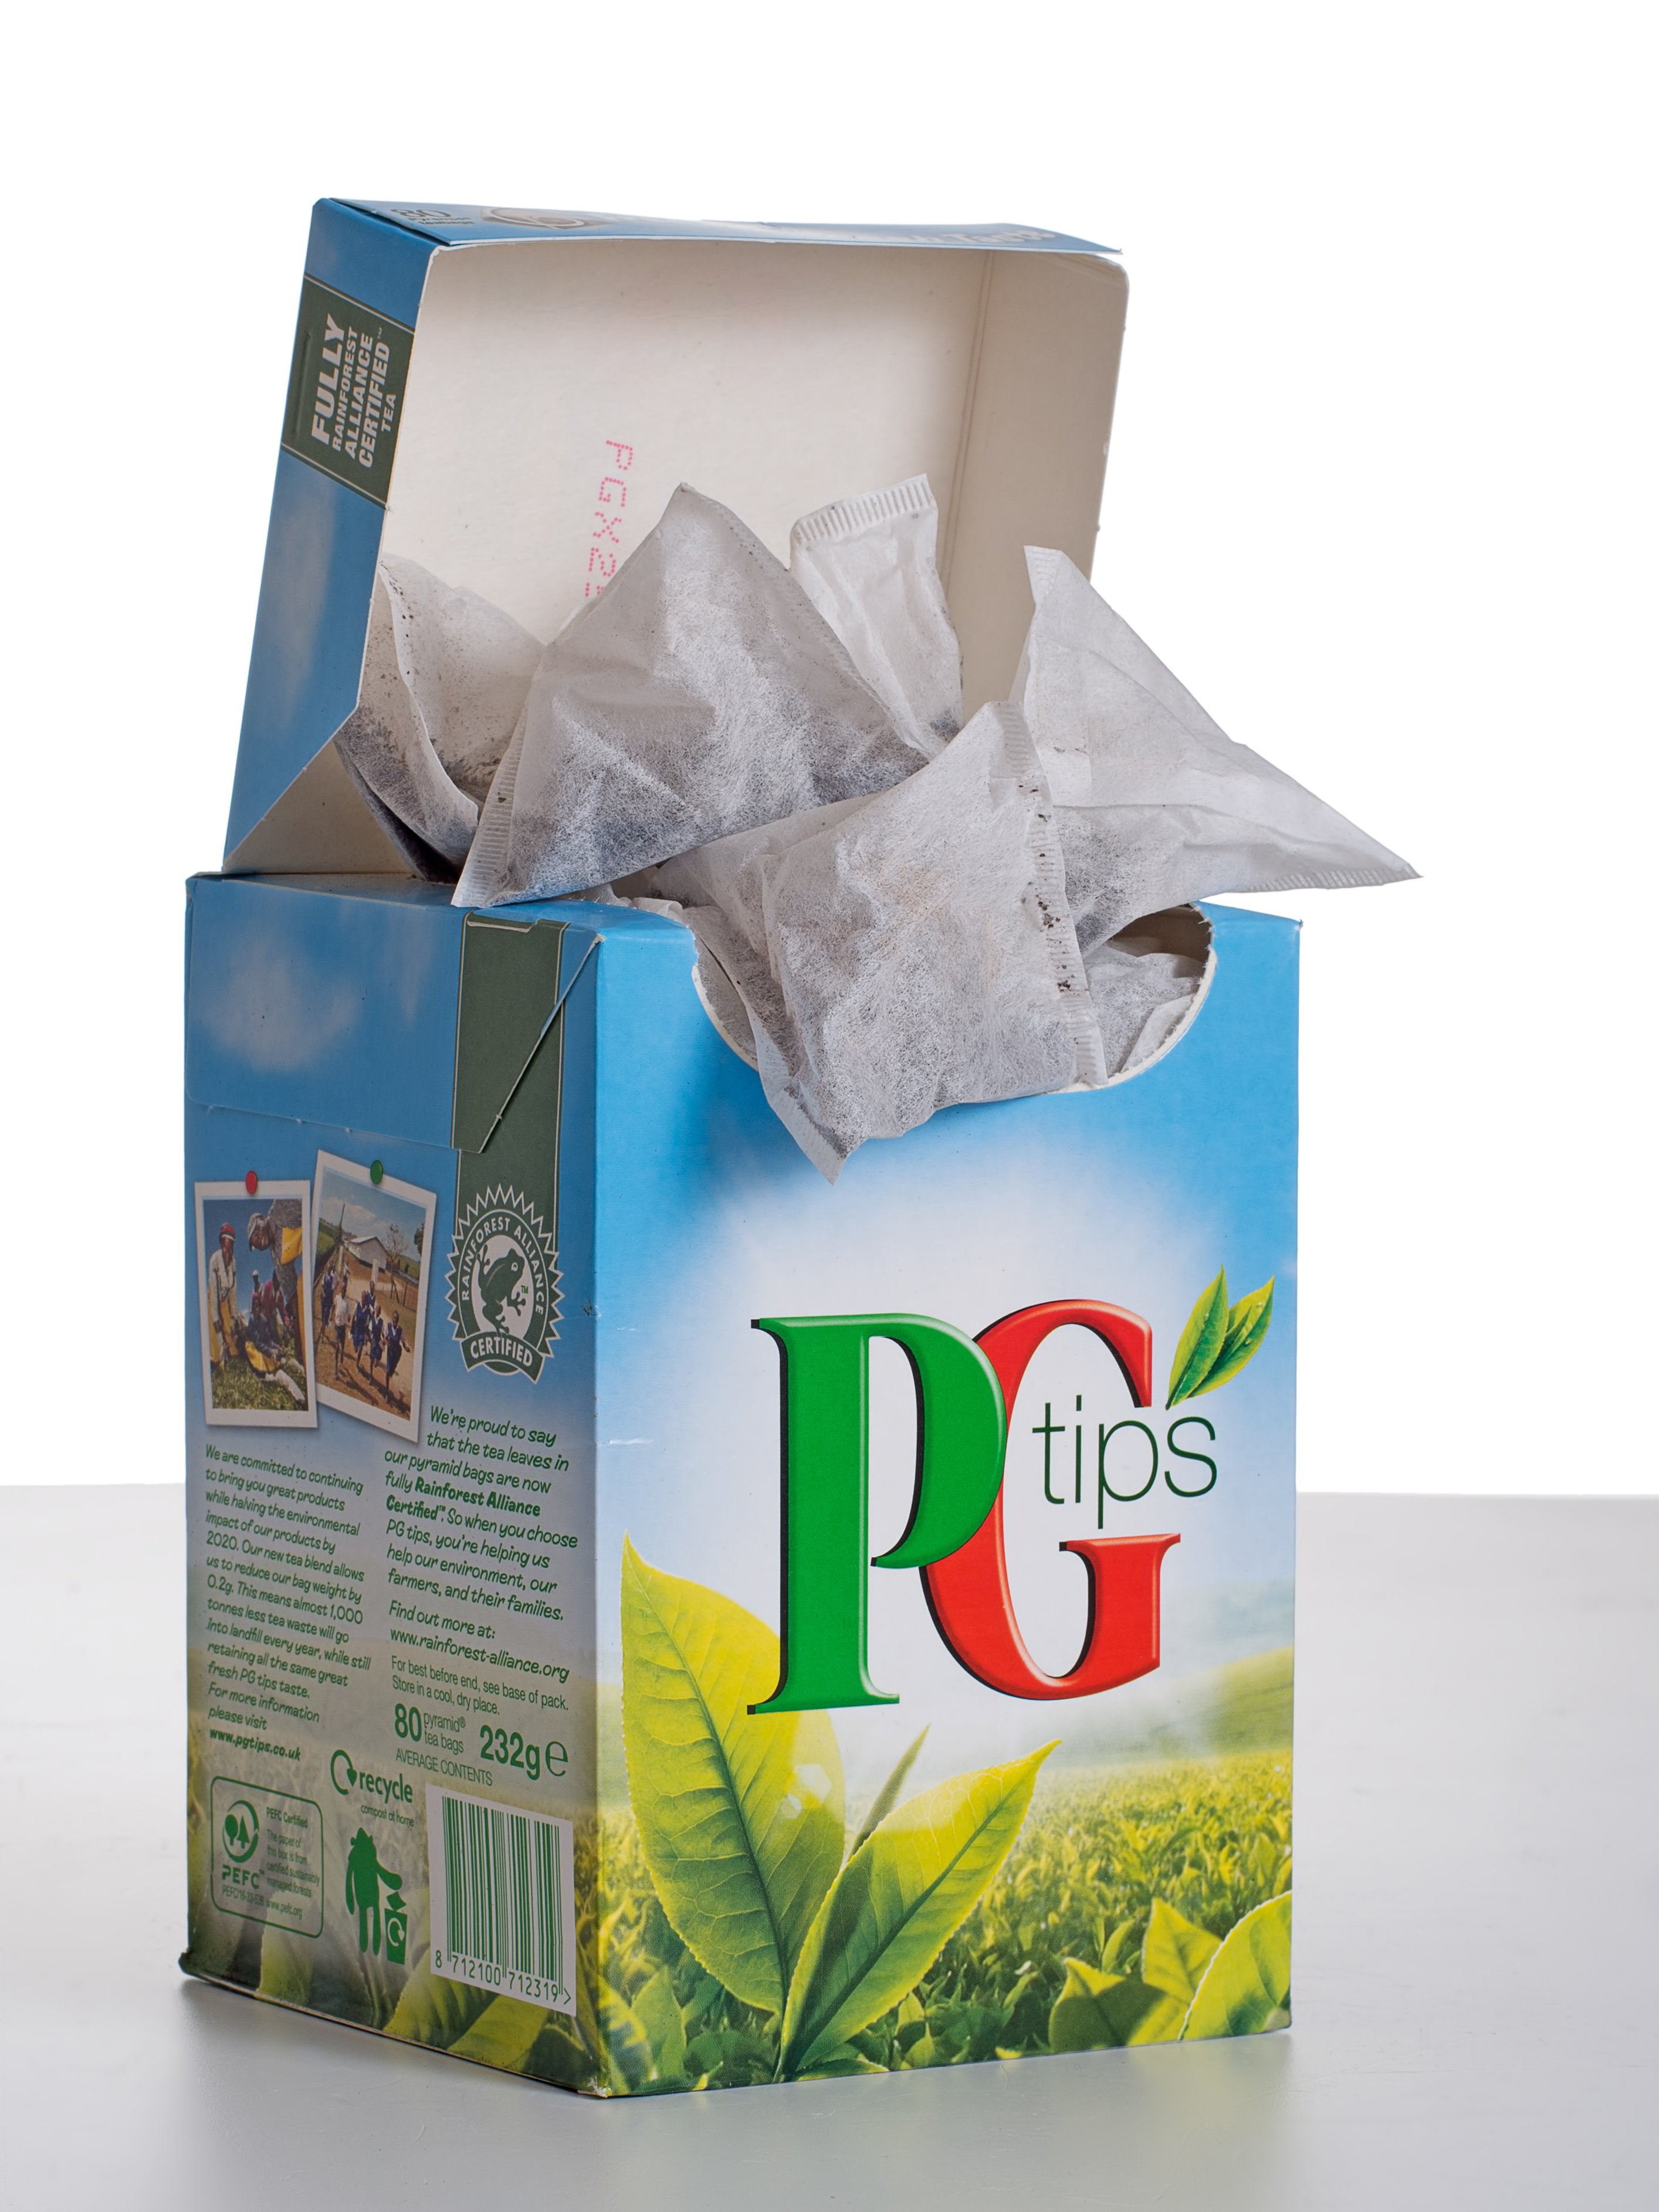 A box of PG Tips Tea | Photo; Shutterstock